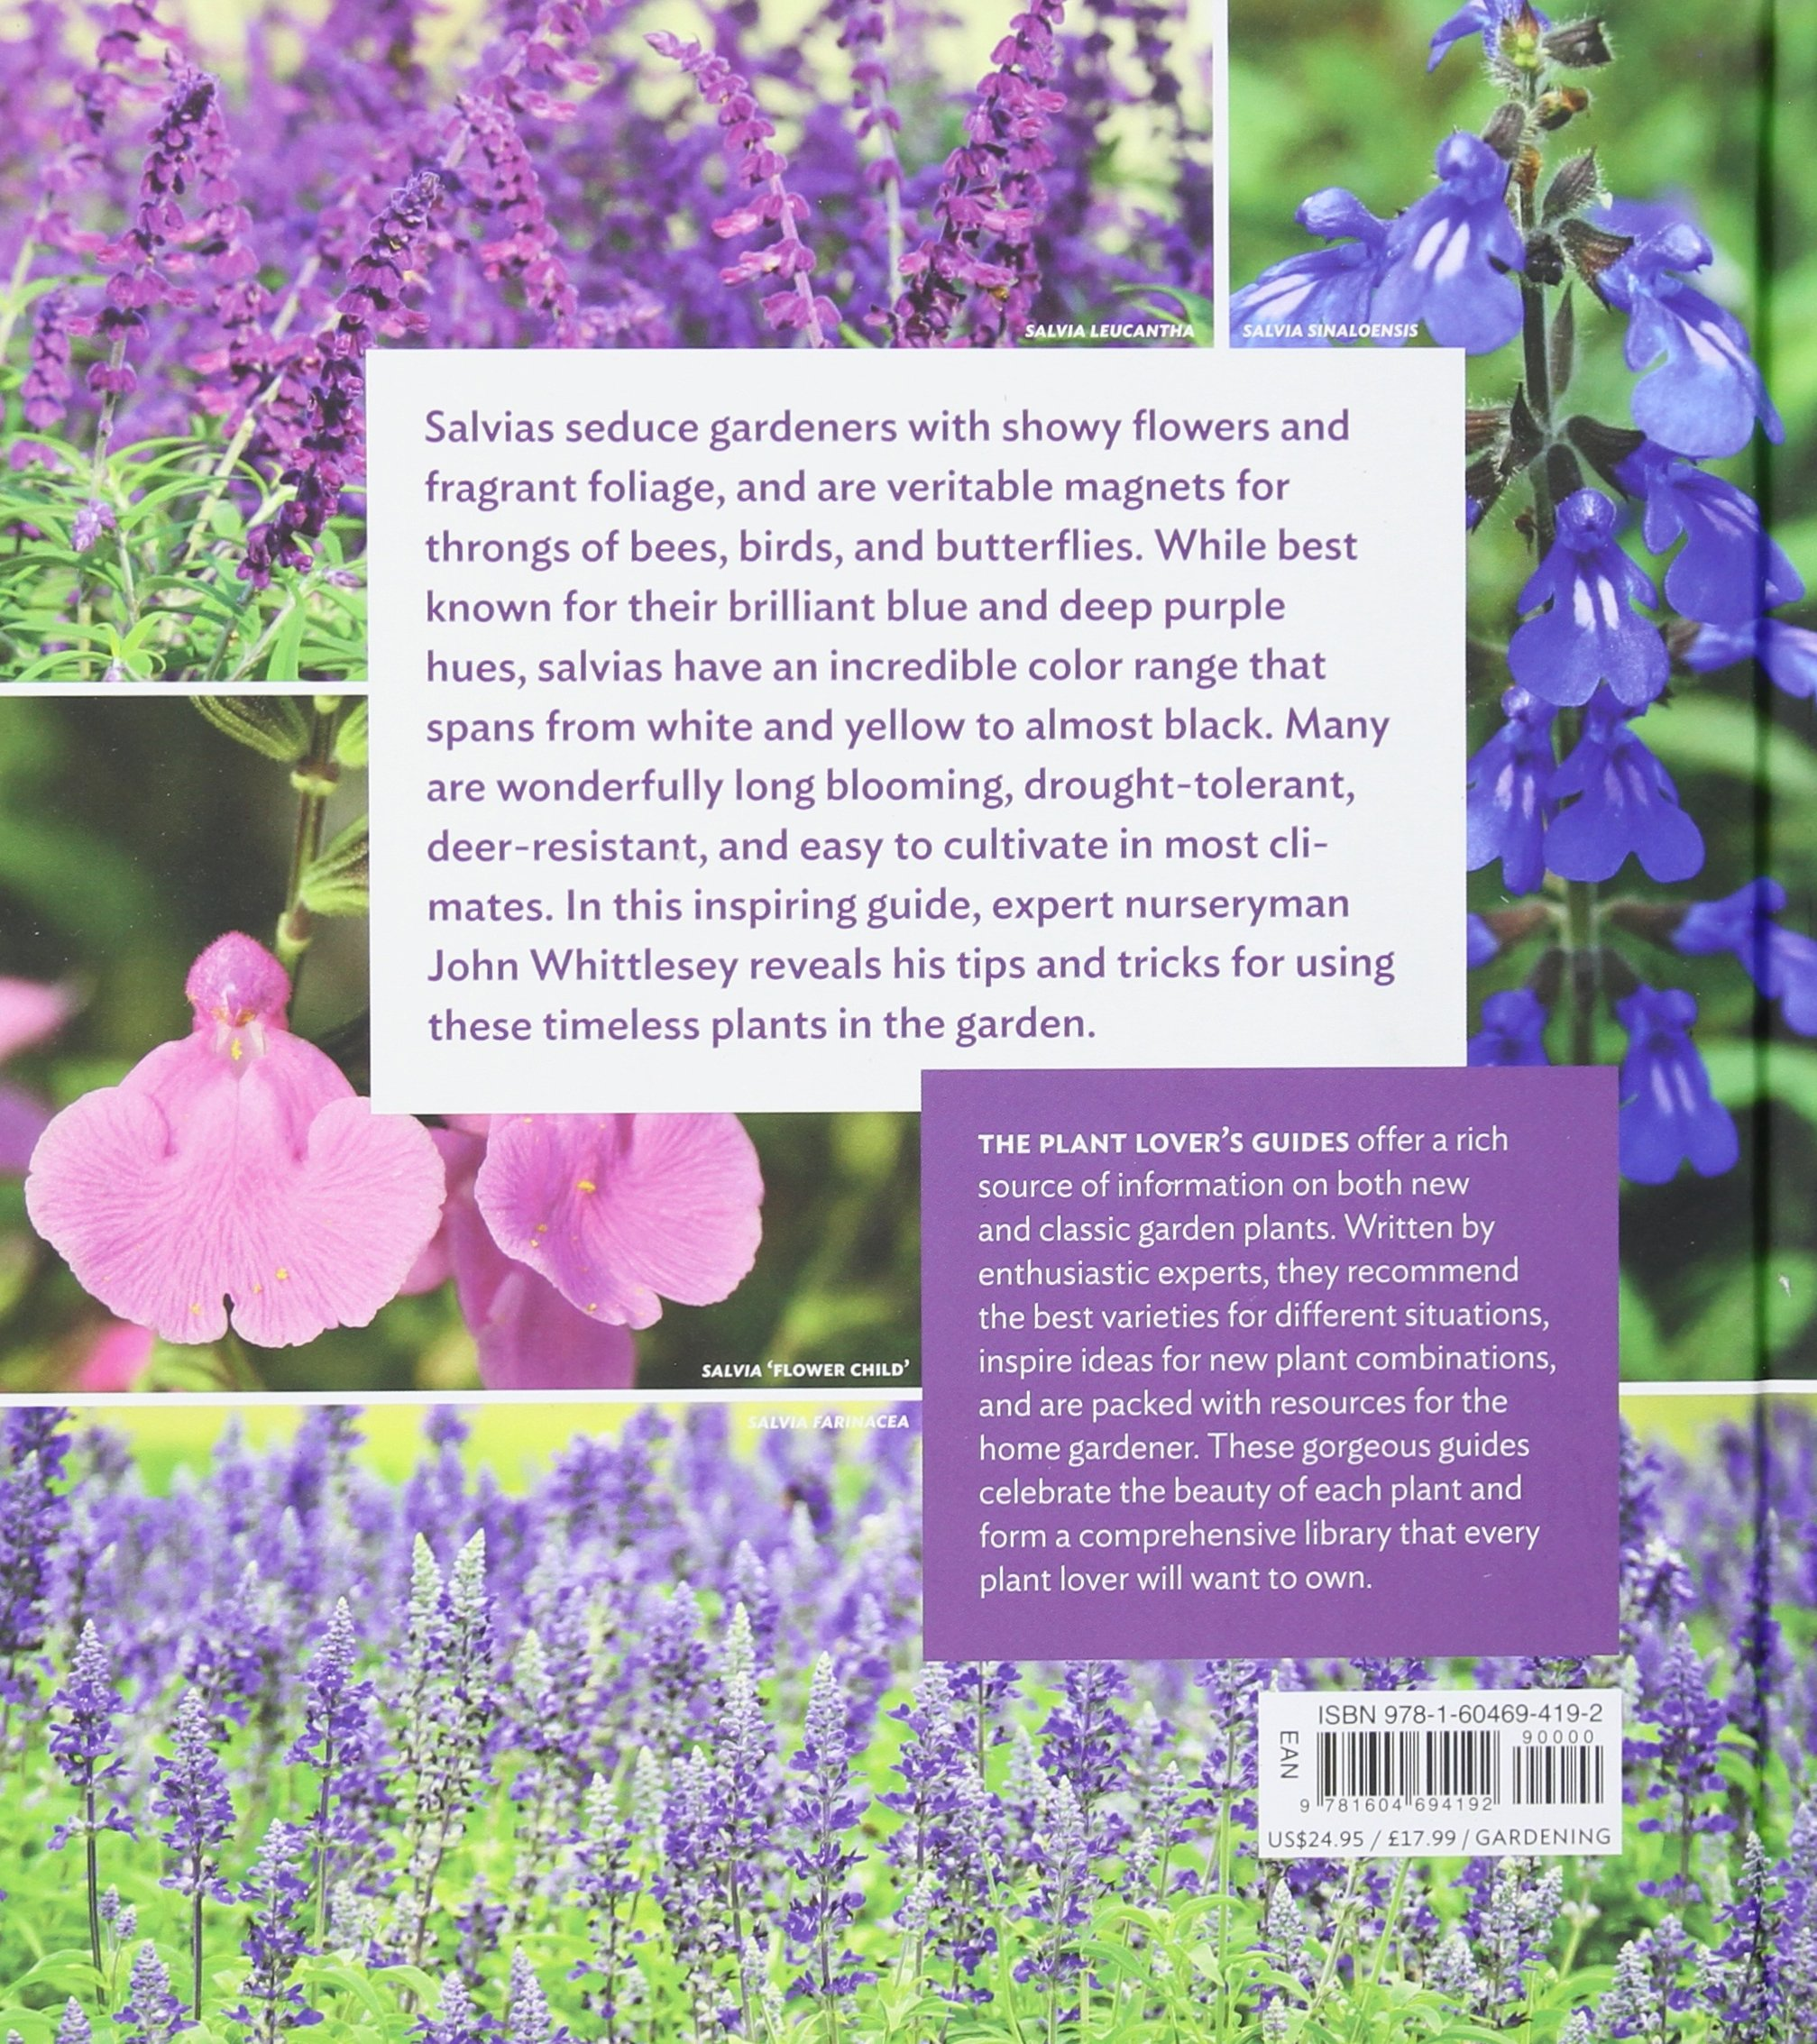 the plant loveru0027s guide to salvias the plant loveru0027s guides john whittlesey amazoncom books - Salvia Plant